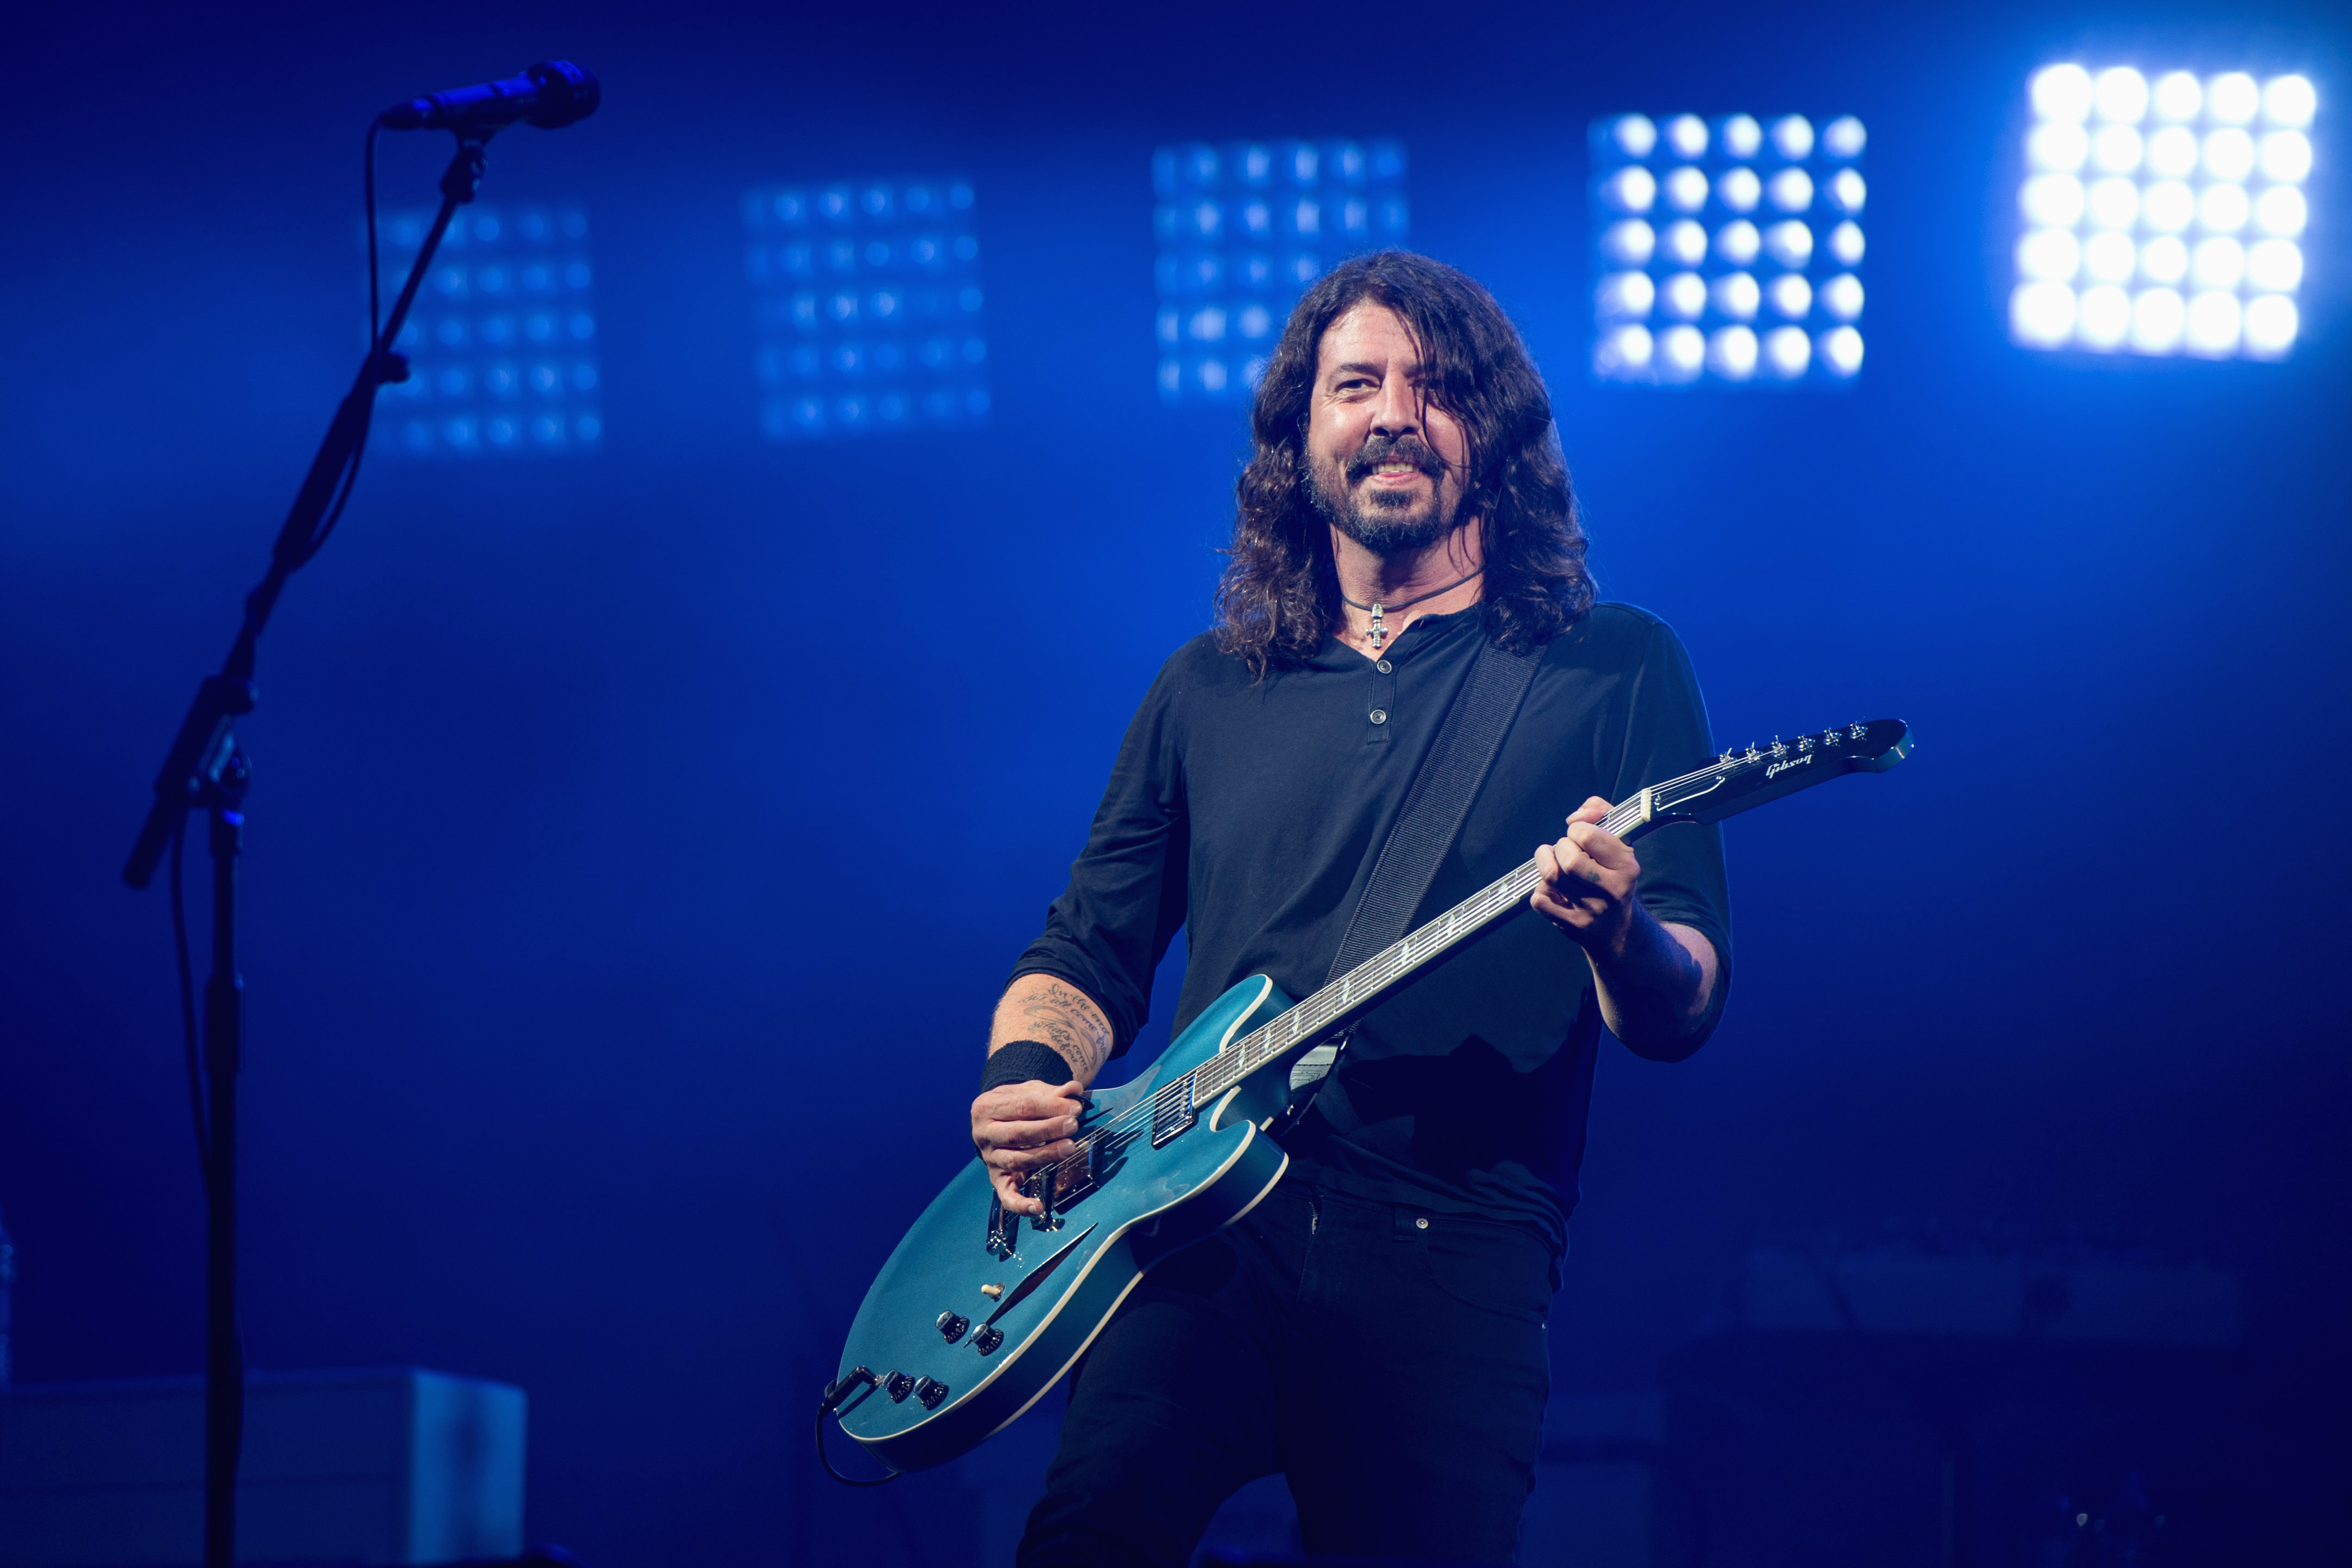 Watch Dave Grohl Tag Team the Monologue With Jimmy Fallon On 'The Tonight Show' [VIDEO]